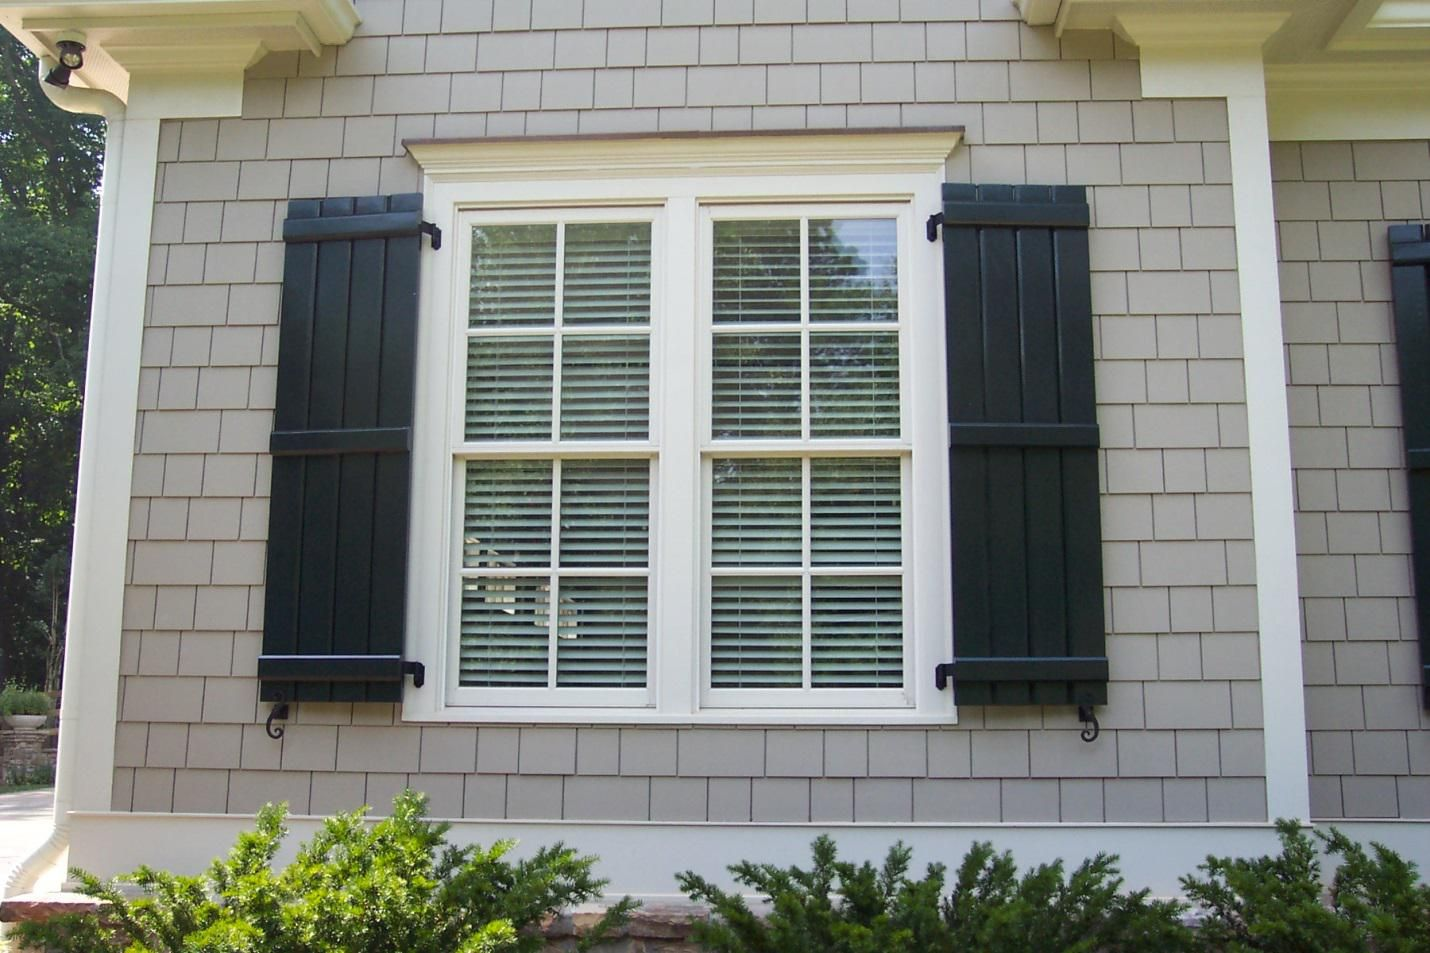 Exterior Shutters Add Value And Increase The Appeal Of Your House Shutters Exterior Windows Exterior Window Shutters Exterior